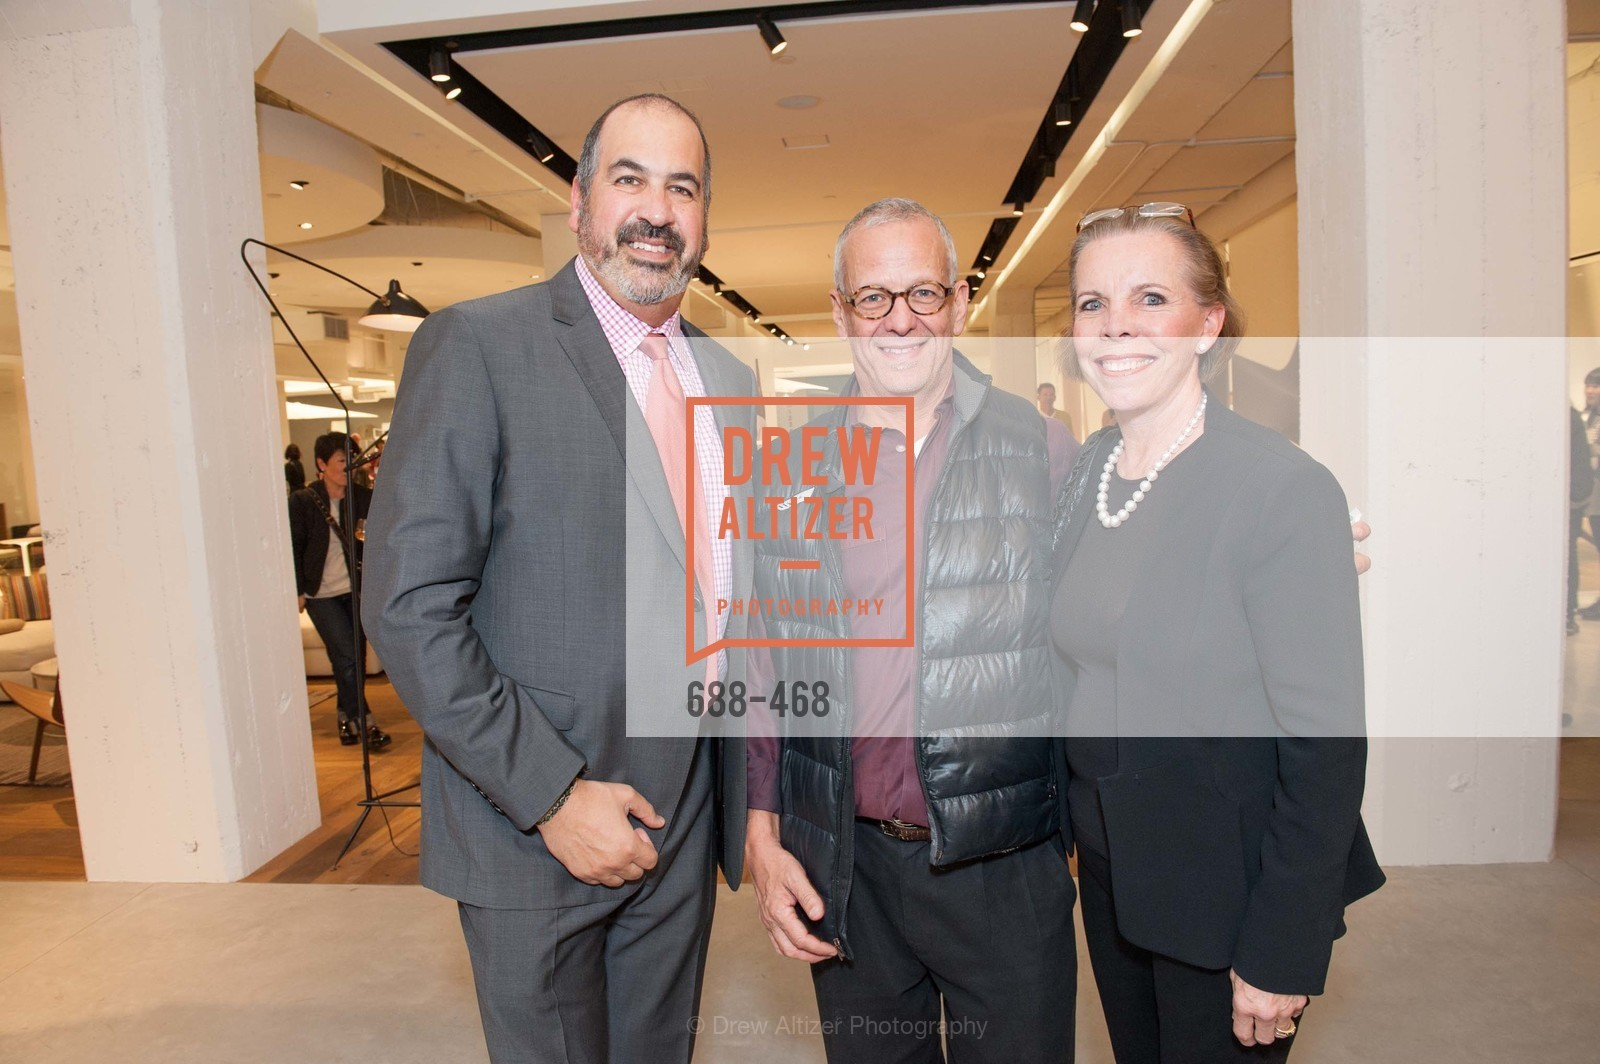 John Edelman, Avner Lapovsky, Pamela Belknap, DESIGN WITHIN REACH Studio Opening, US. US, January 21st, 2014,Drew Altizer, Drew Altizer Photography, full-service event agency, private events, San Francisco photographer, photographer California